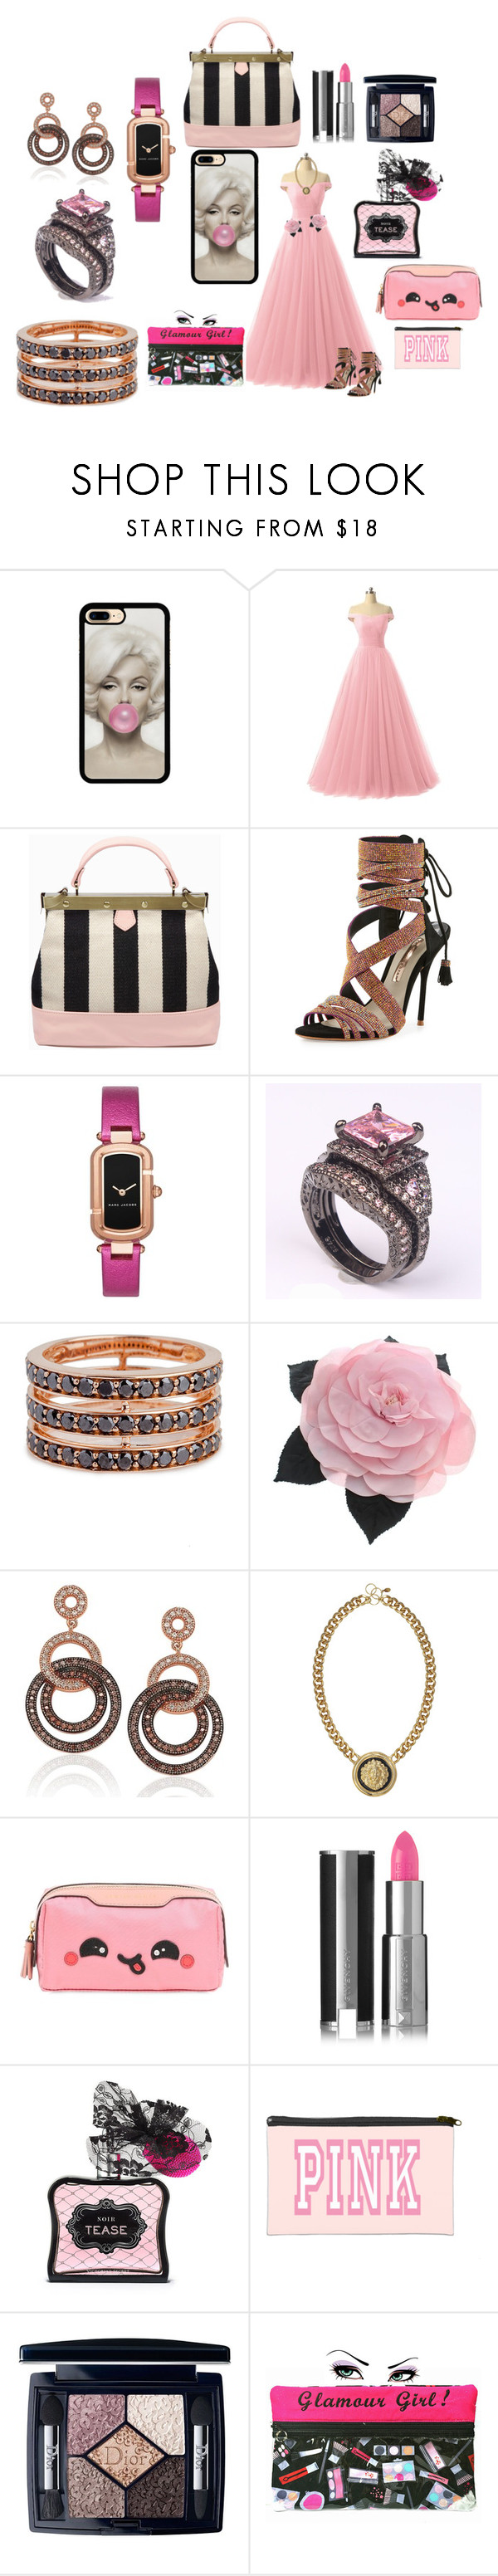 Untitled #430 by bamagirl0320 on Polyvore featuring Sophia Webster, Tammy & Benjamin, Bochic, Marc Jacobs, Suzy Levian, Chanel, Christian Dior, Givenchy, Victoria's Secret and Anya Hindmarch